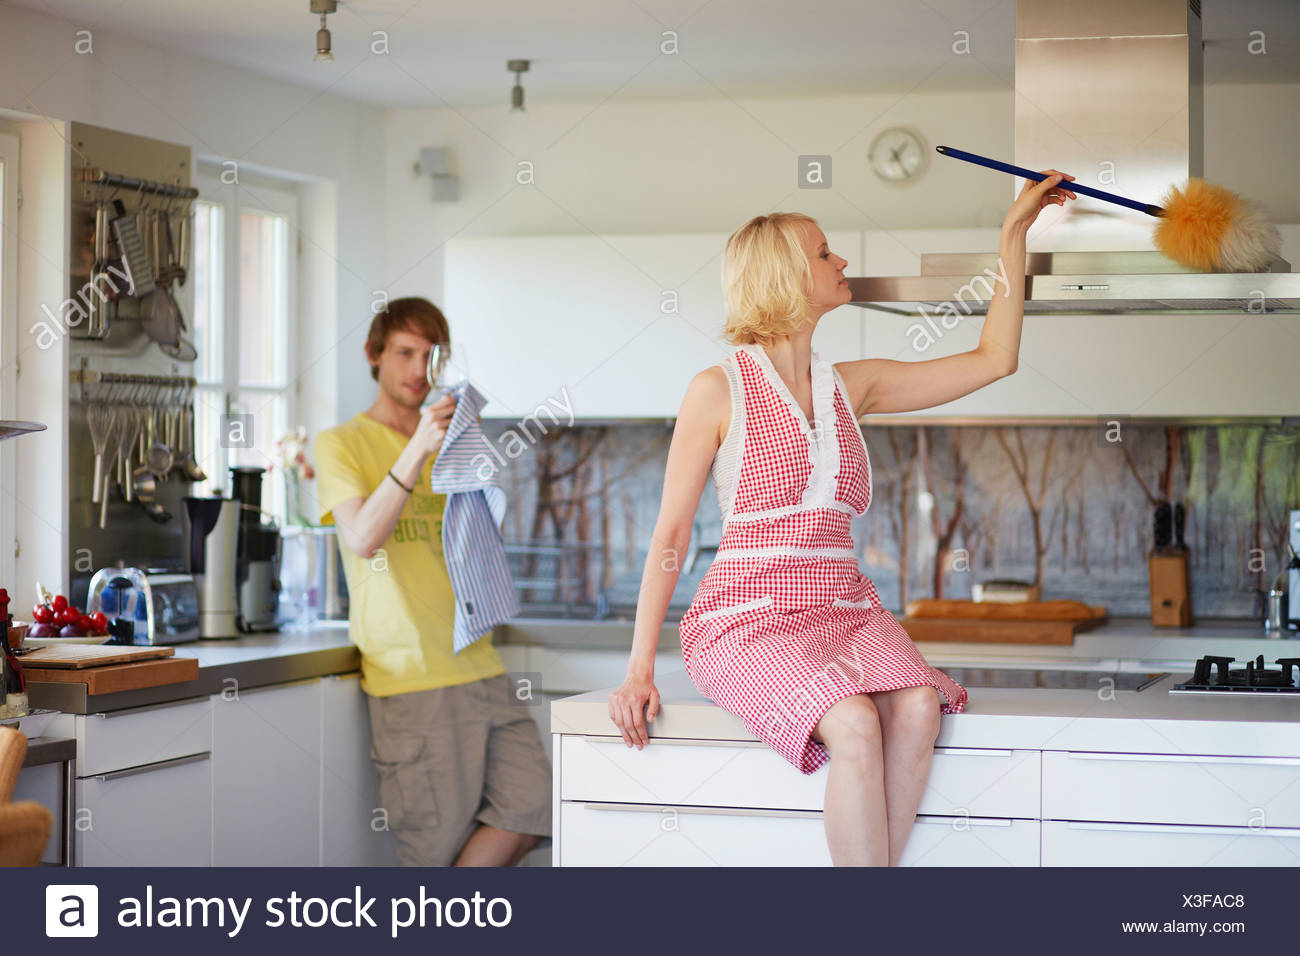 Couple cleaning together in kitchen - Stock Image